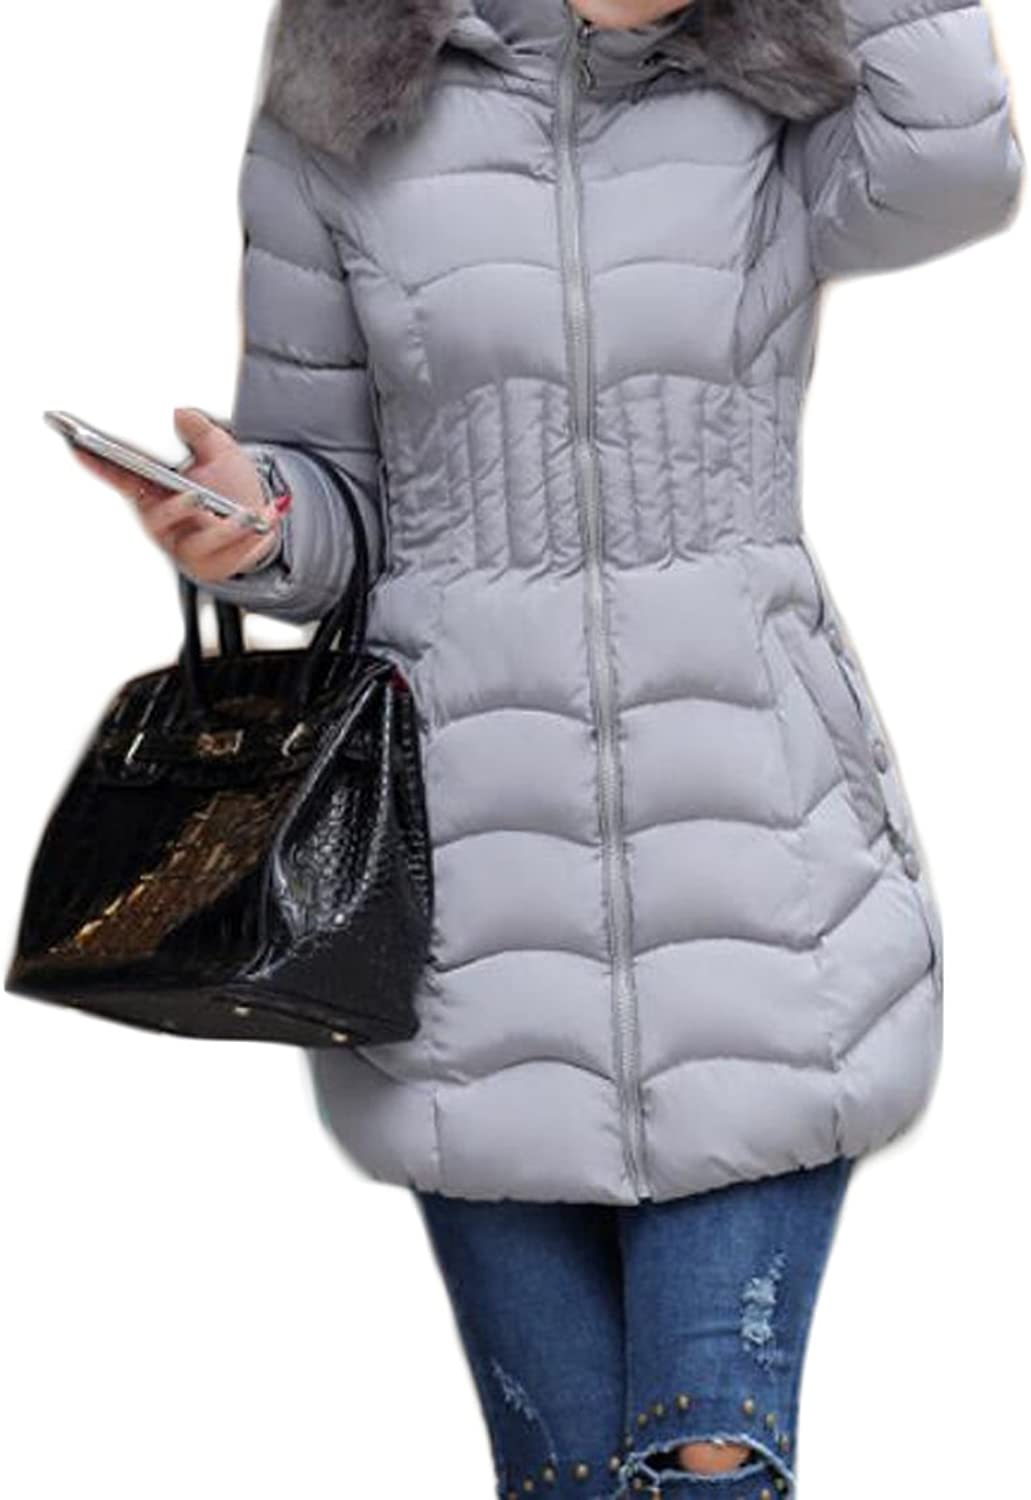 BYWX Women's Zip Front Faux Fur Hoodie Quilted Padding Thick Jacket Outwear